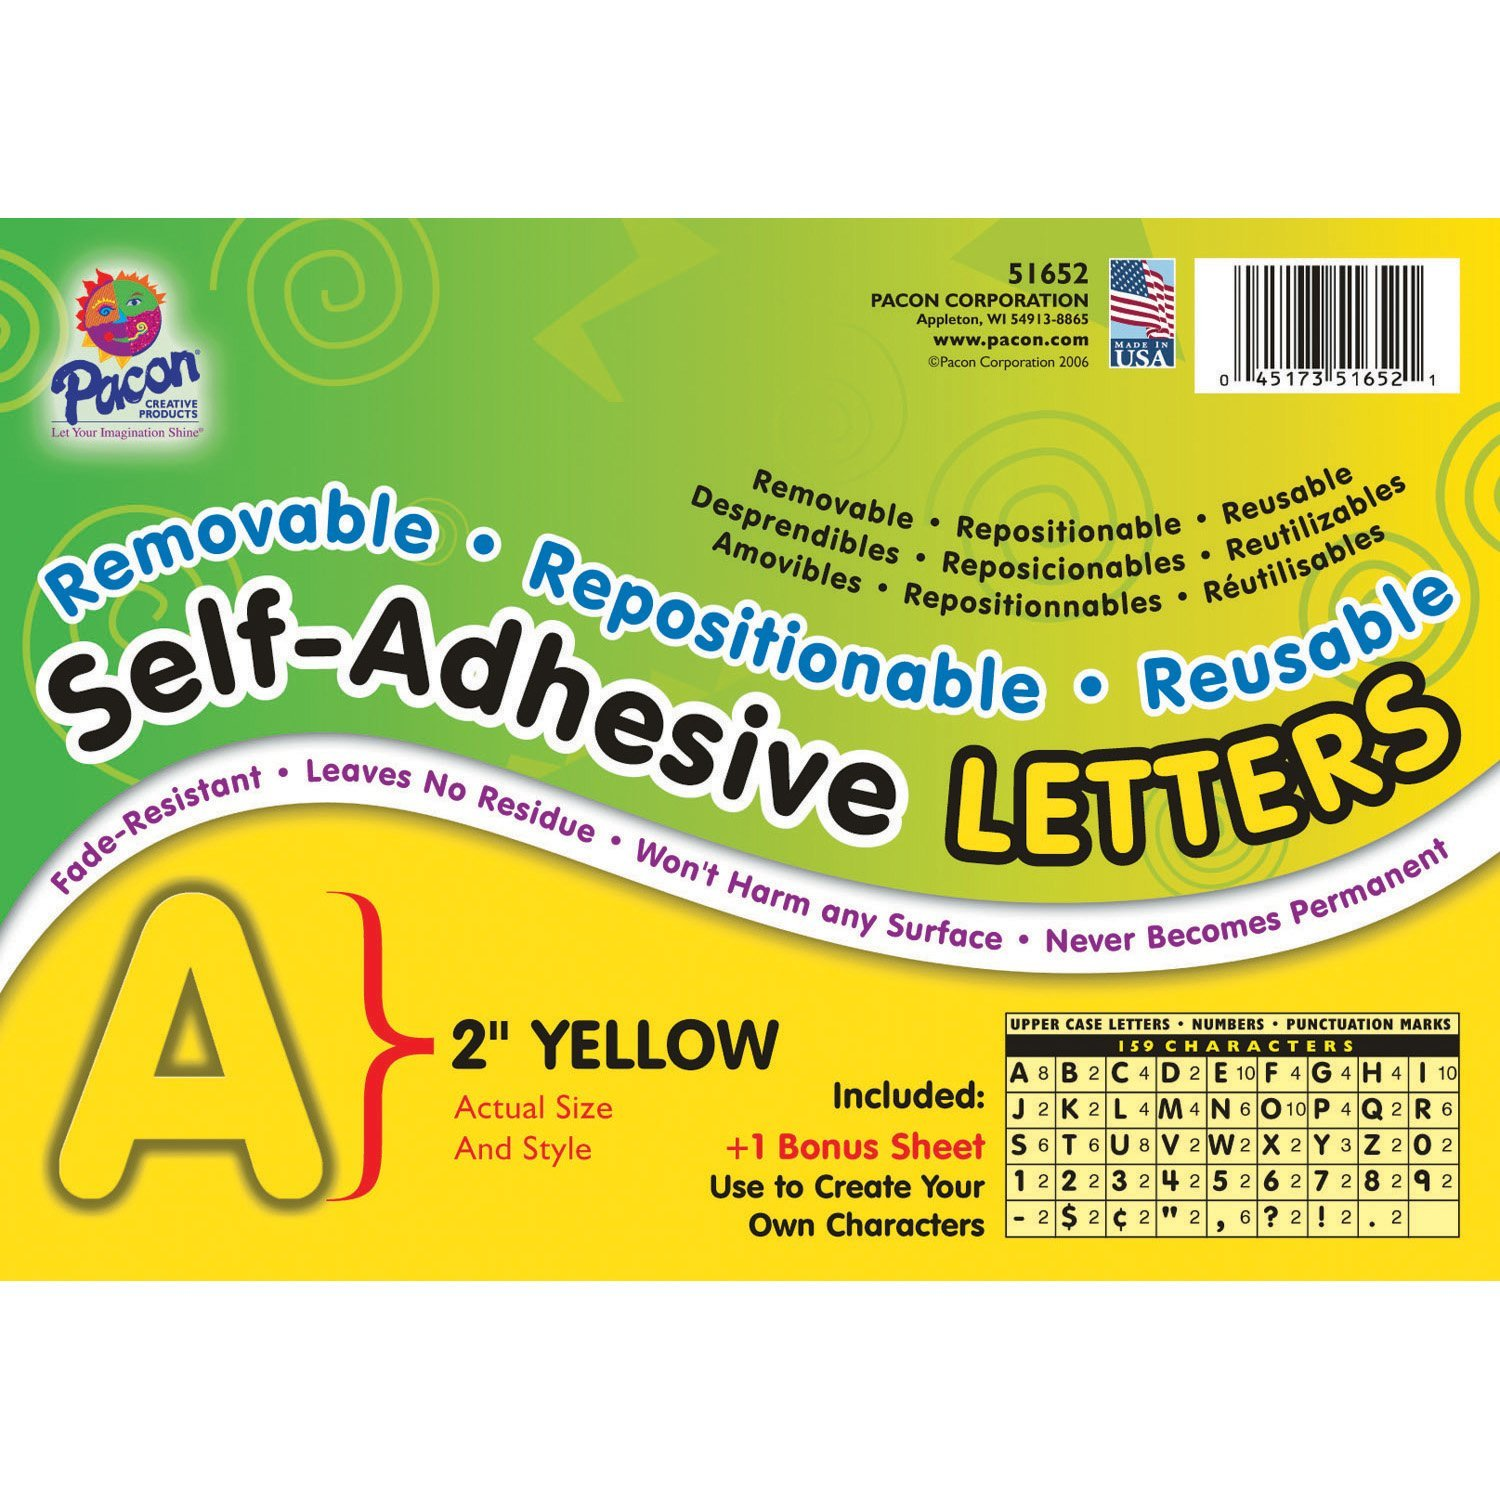 Pacon PAC51652BN Self-Adhesive Letters, Yellow, Puffy Font, 2'', 159 Characters Per Pack, 2 Packs by Pacon